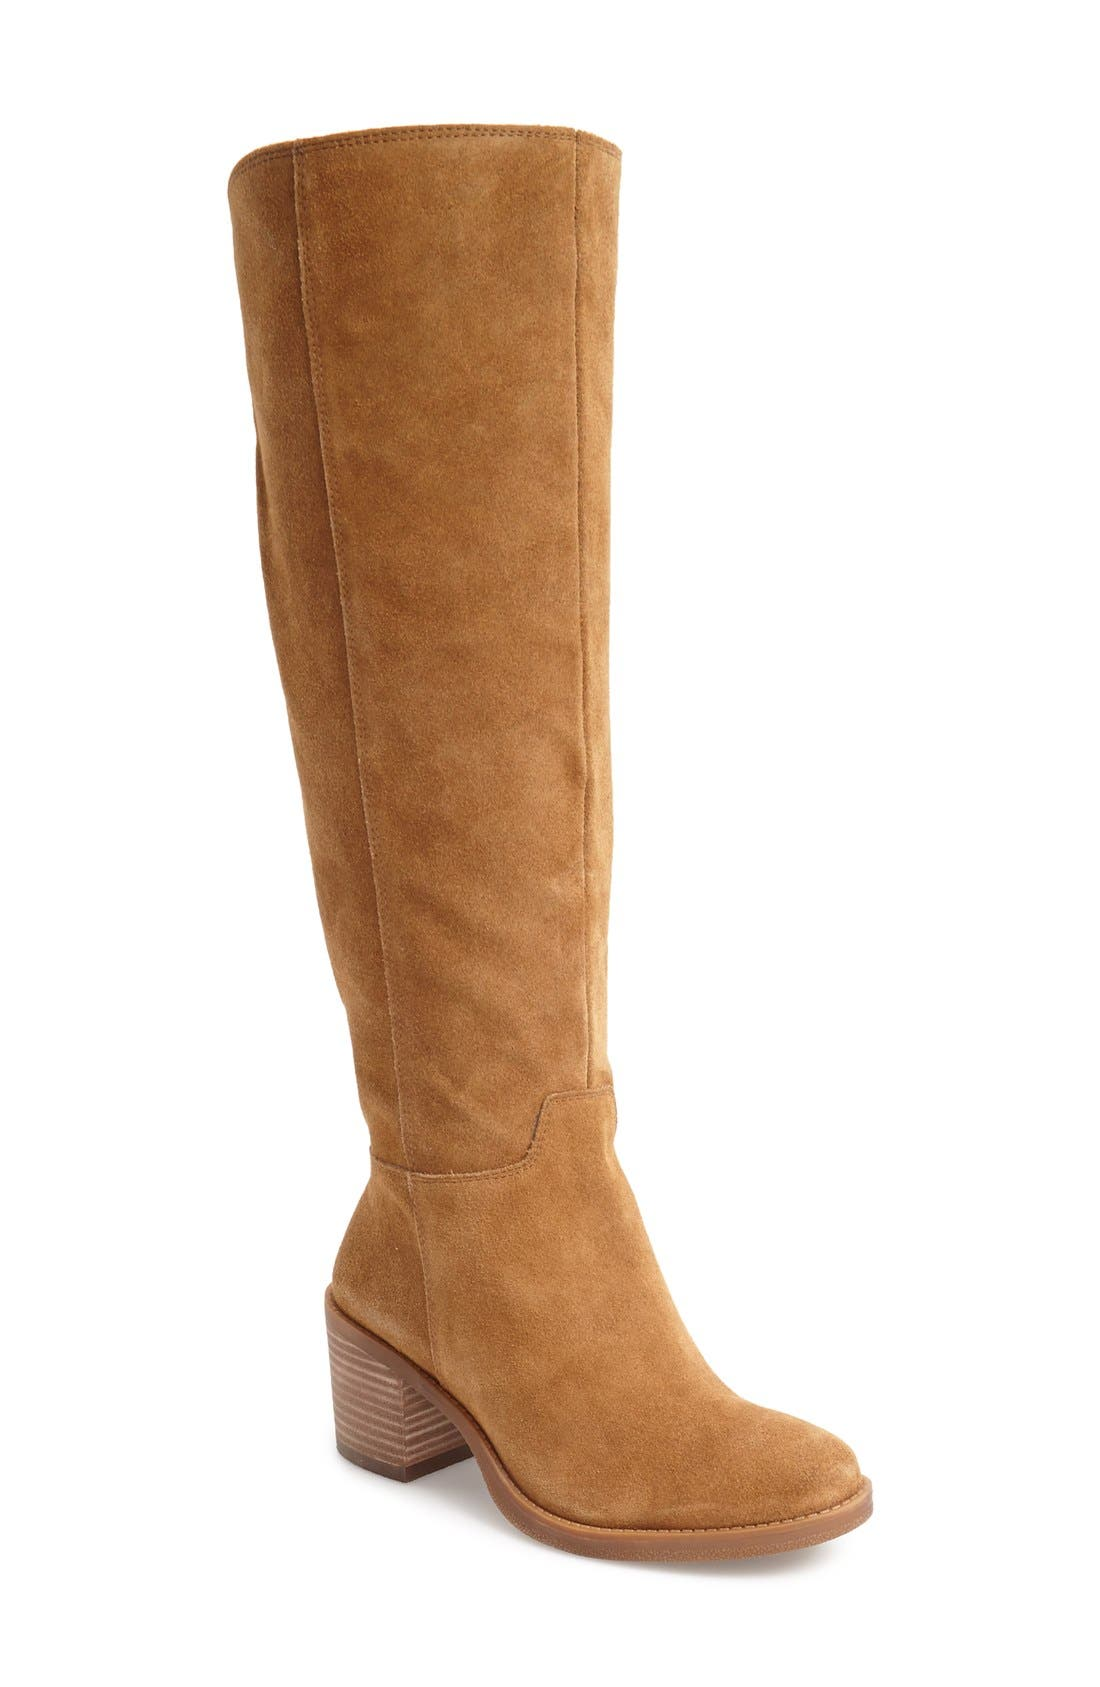 Alternate Image 1 Selected - Lucky Brand Ritten Tall Boot (Women)